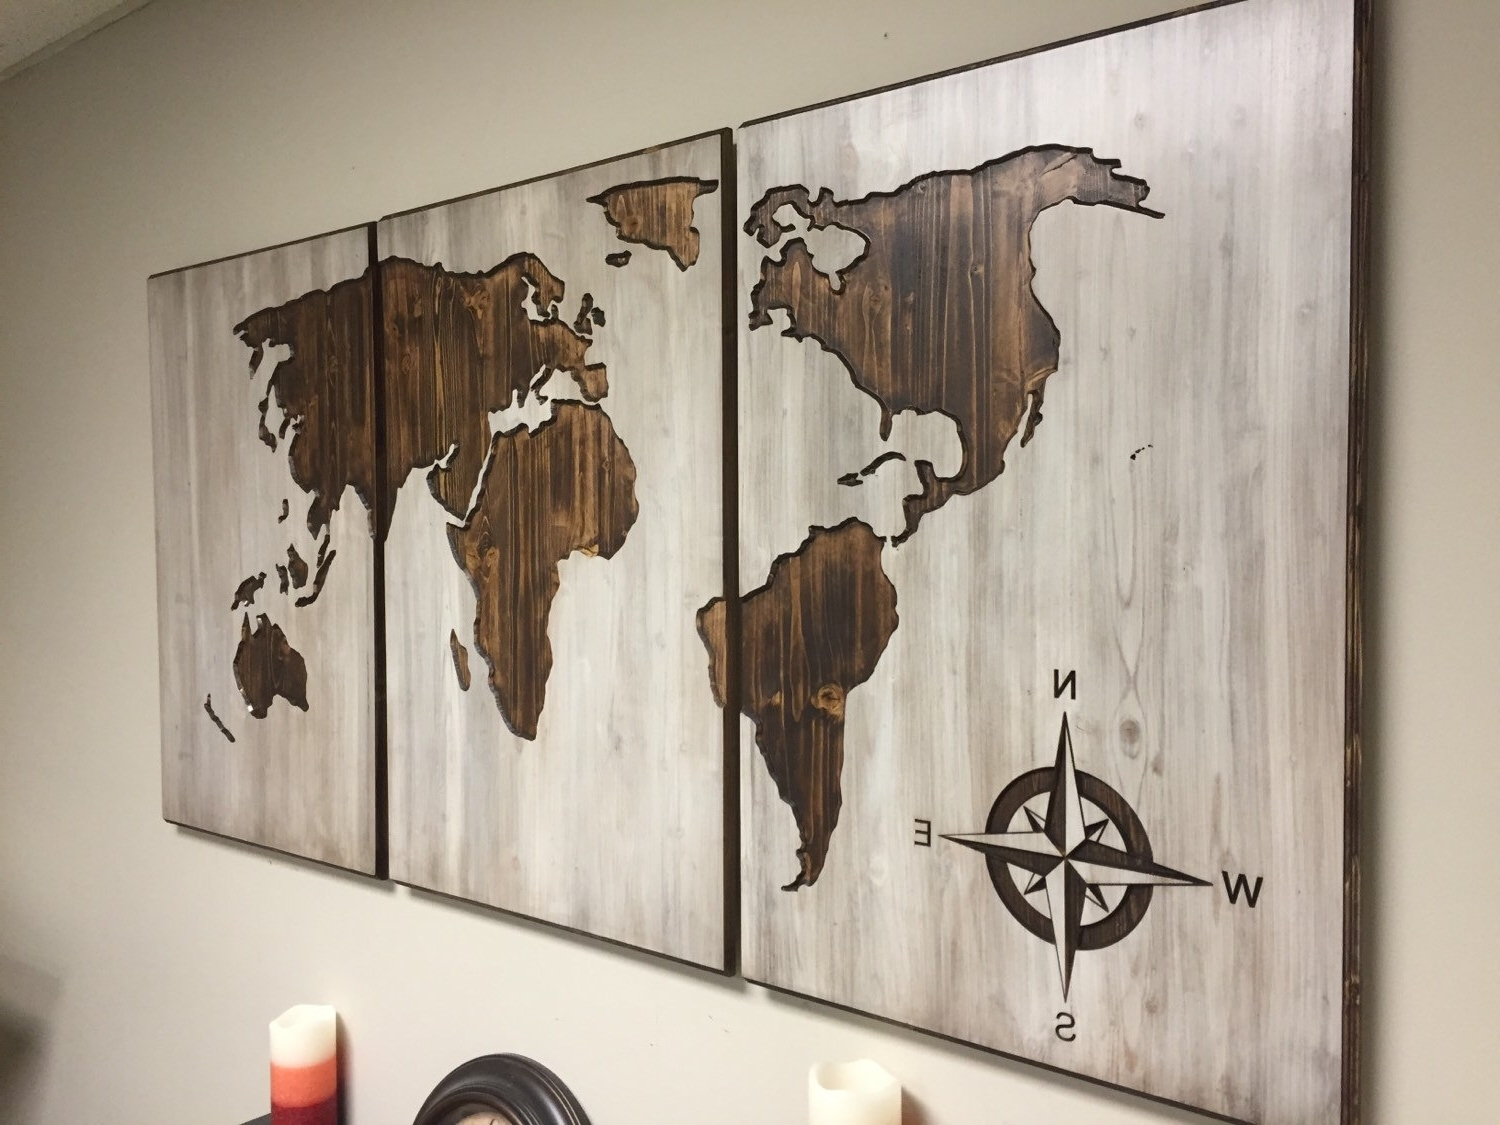 Cameo Wall Art Pertaining To Well Known Diy World Map Wall Art Tutorial Using The Silhouette Cameo Could (View 11 of 15)